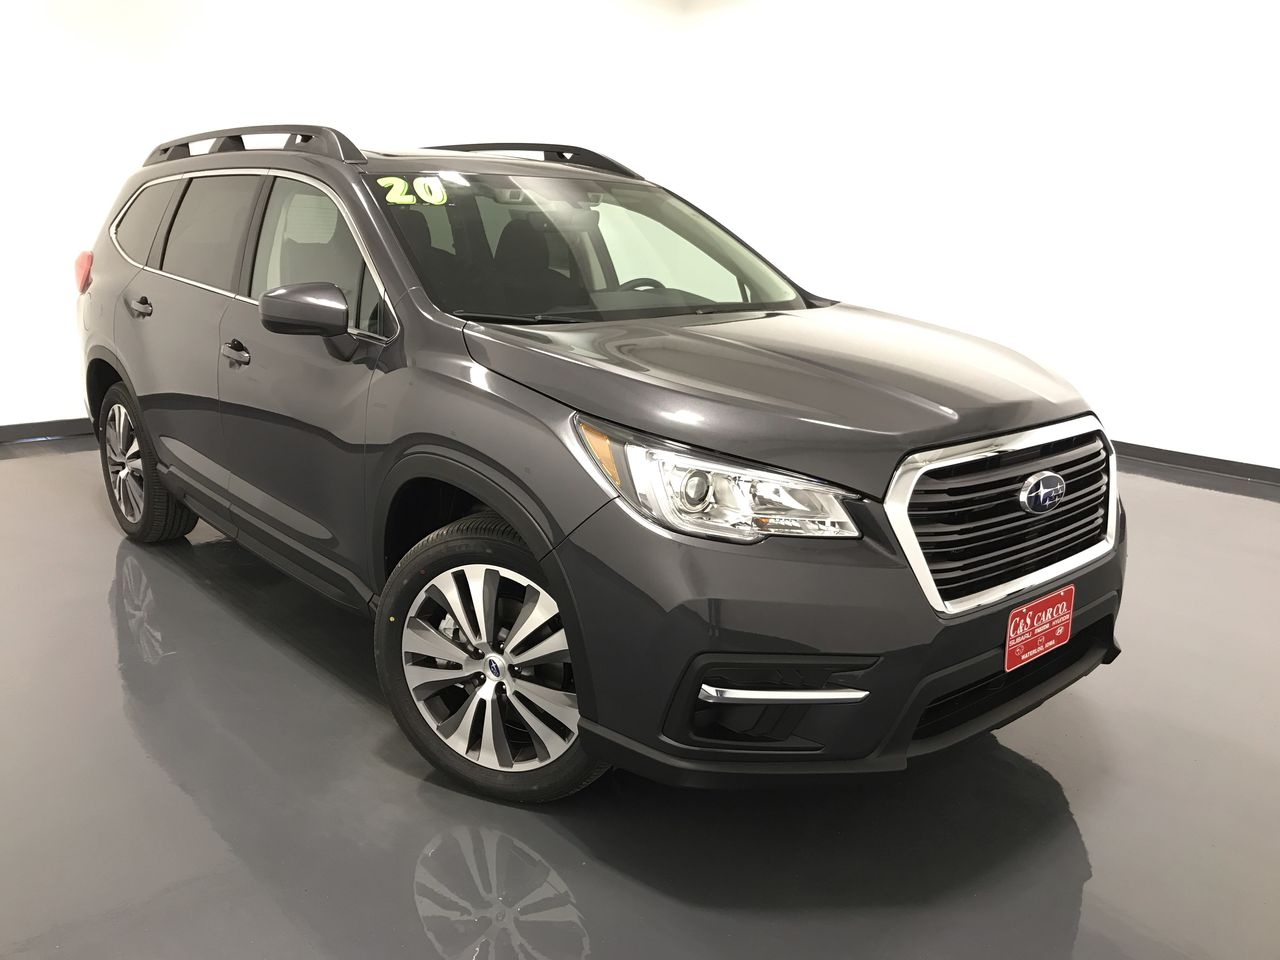 2020 Subaru ASCENT Premium AWD w/Eyesight  - SC8137  - C & S Car Company